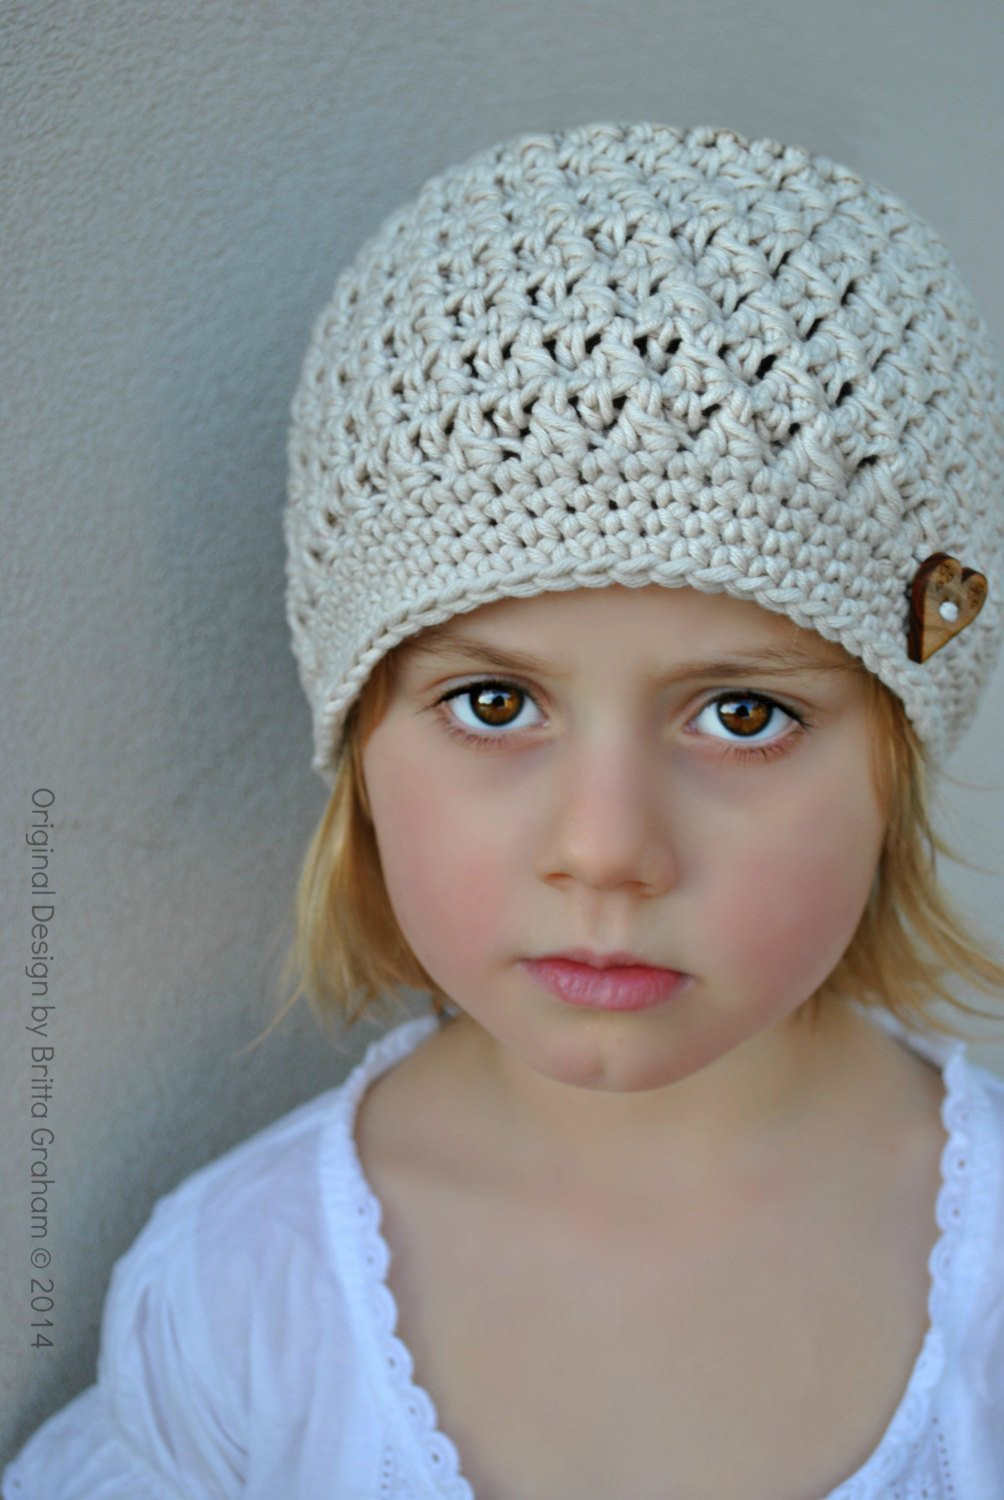 Fresh Crochet Hat Pattern Chunky Textured Beanie Crochet Crochet toddler Hat Pattern Of Delightful 40 Ideas Crochet toddler Hat Pattern